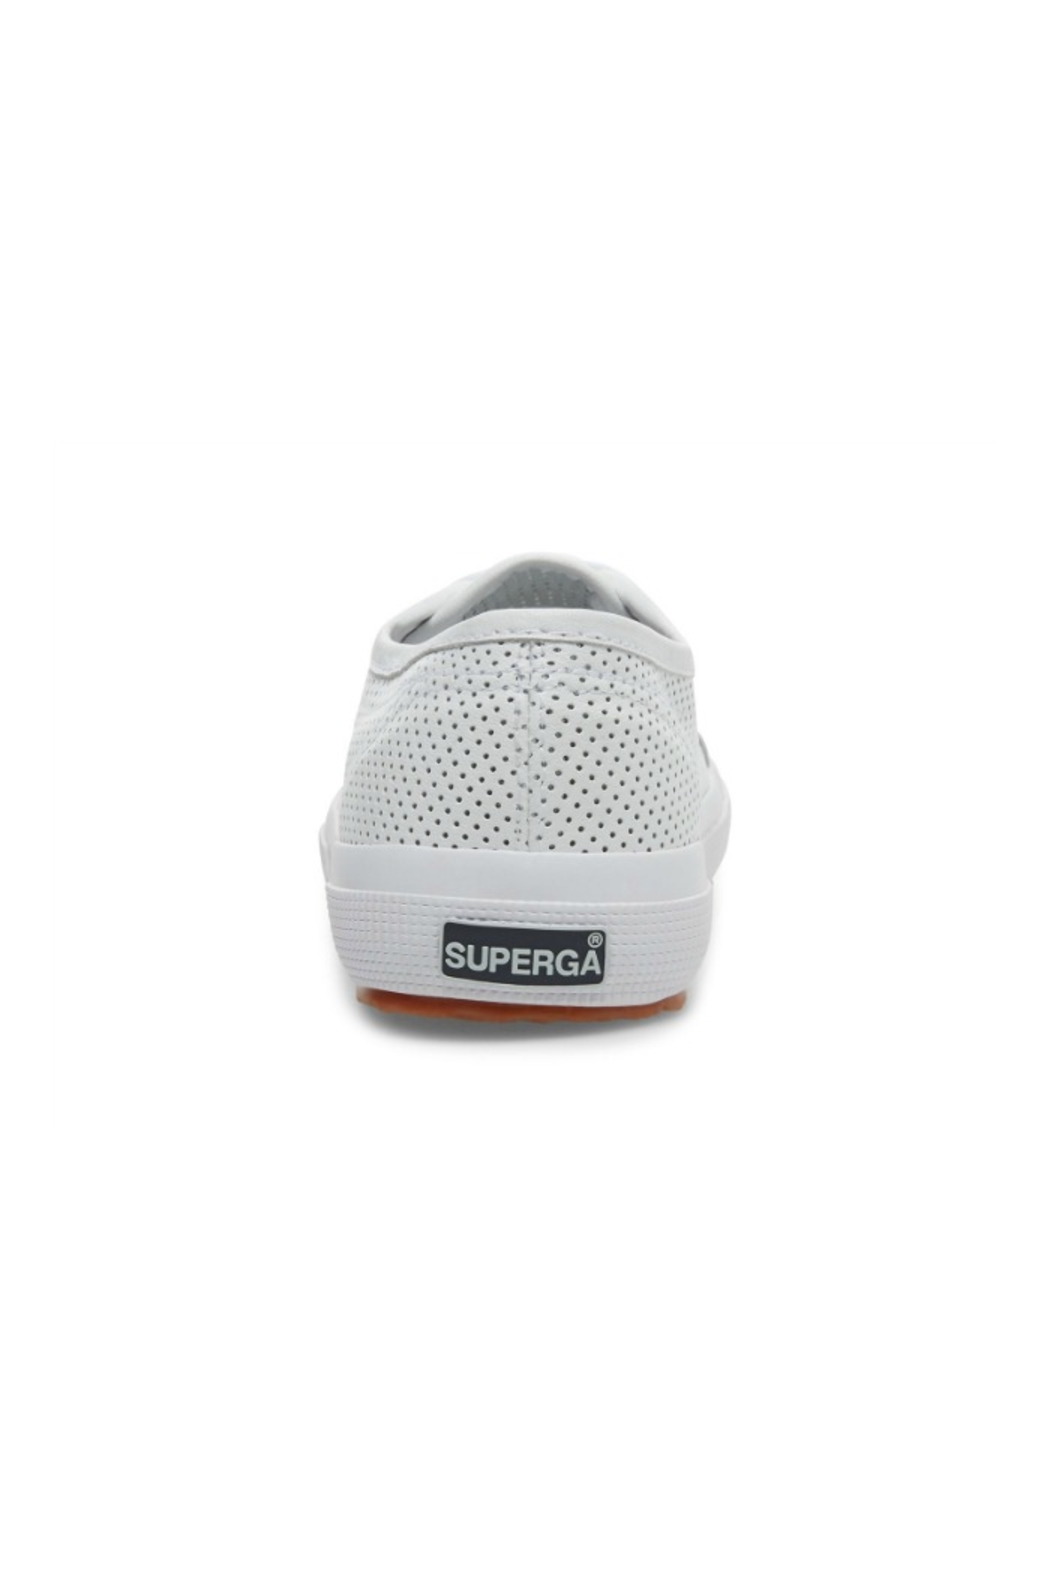 Superga Women's 2750 White Perforated Sneaker - Back Cropped Image